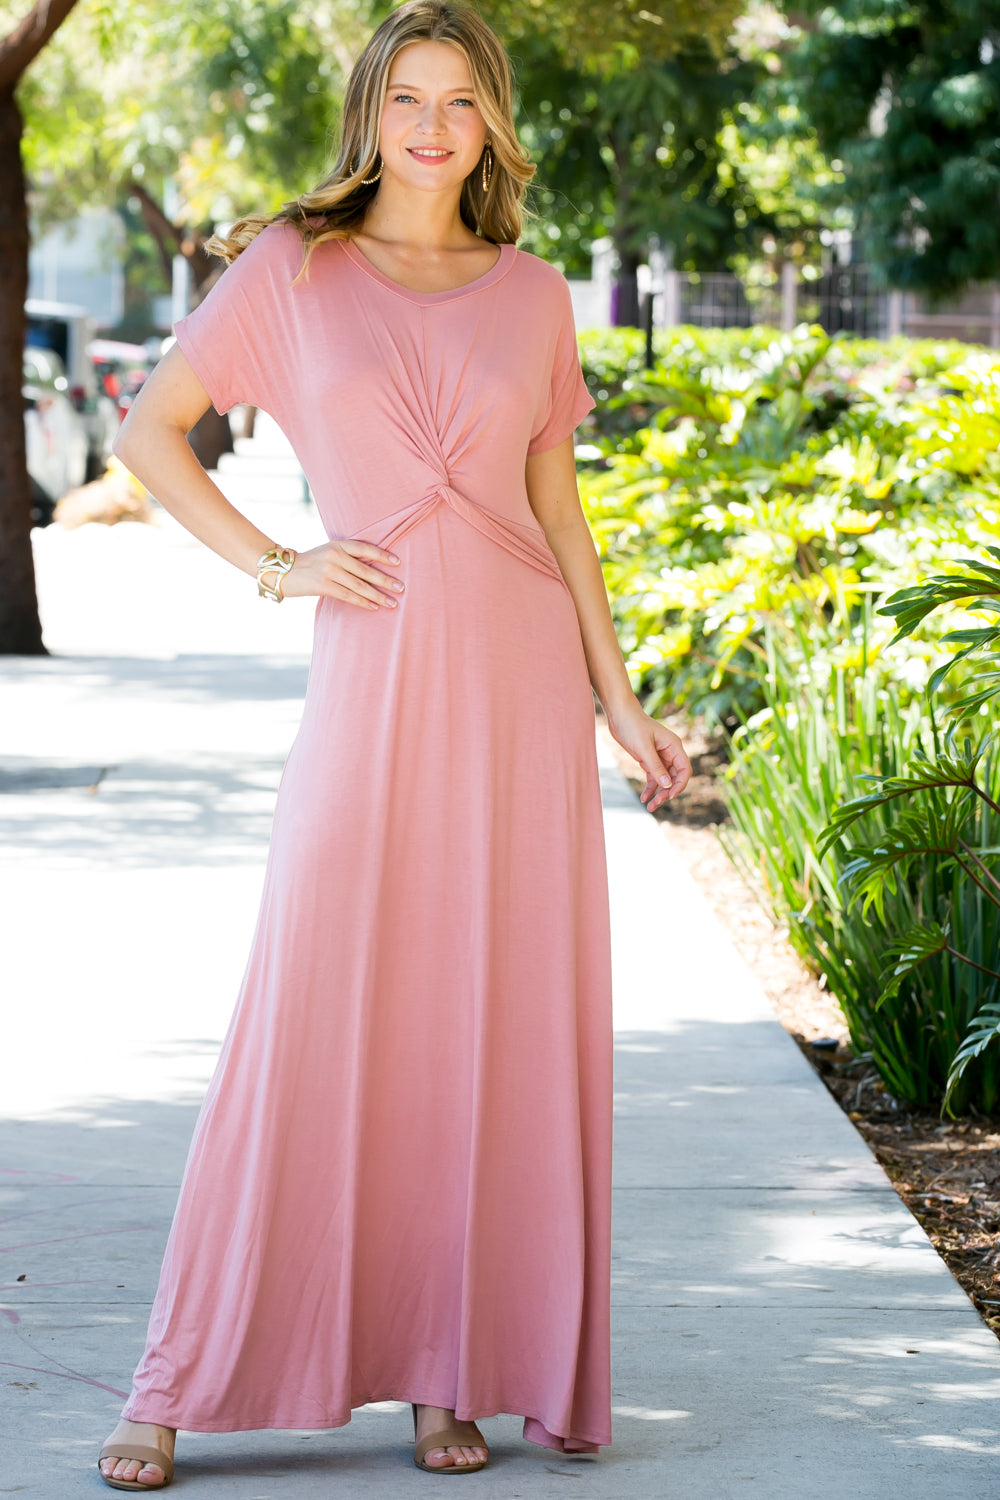 PINK SOLID KNOTTED MAXI DRESS